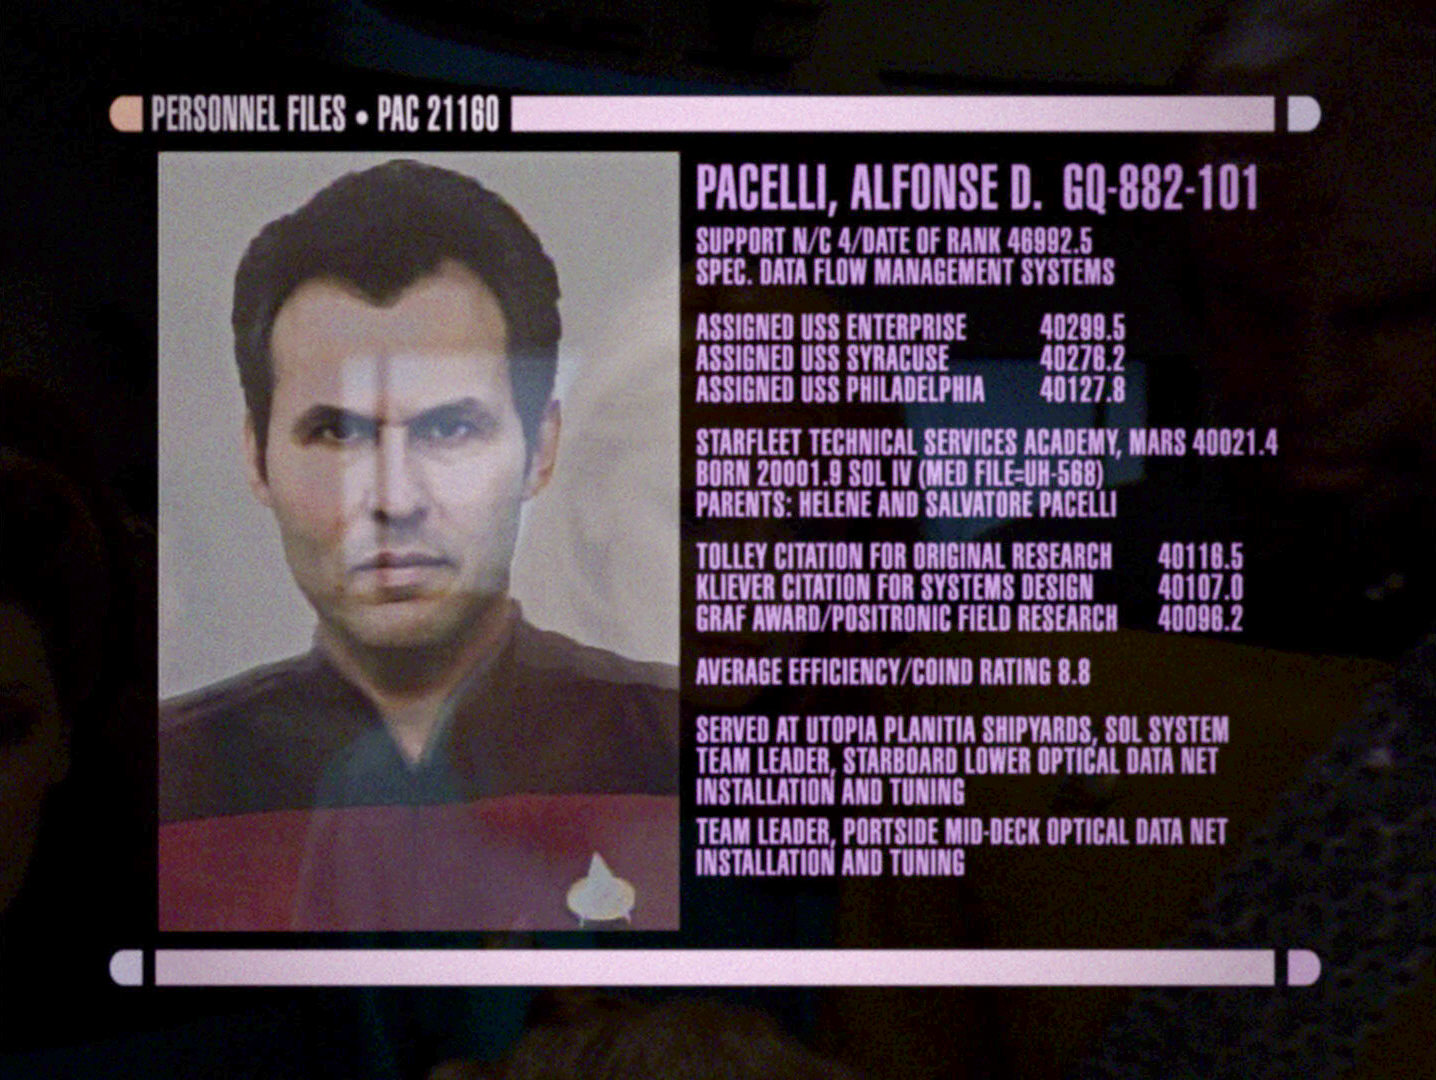 ex astris scientia other starfleet ship classes uss philadelphia shown as part of a personnel file alfonse d pacelli in tng eye of the beholder the personnel file appears only in deanna s